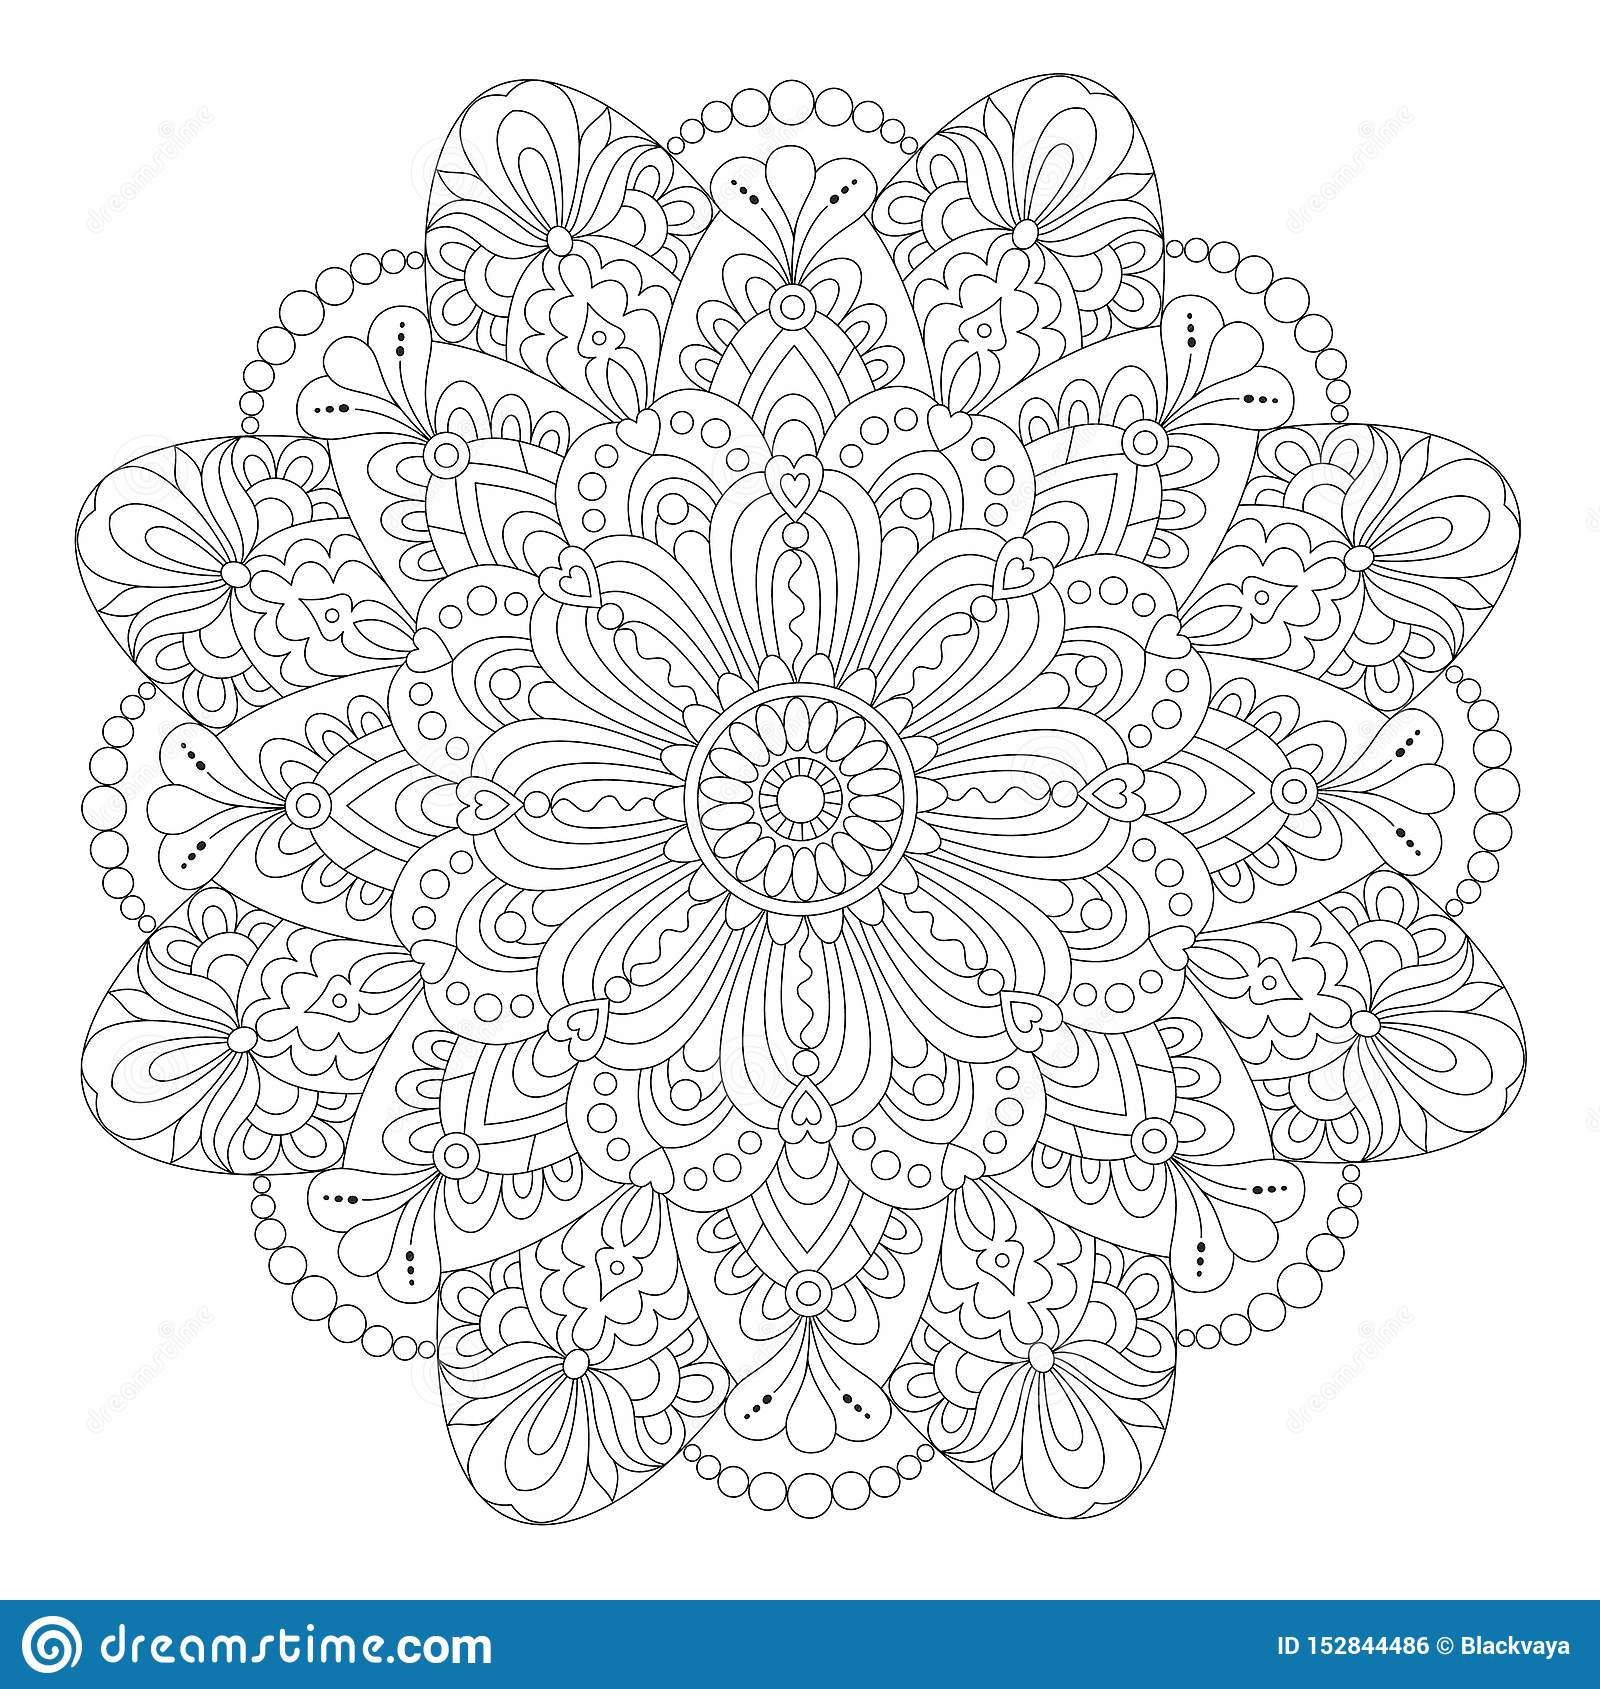 Mandala Coloring Page For Adult, Zentangle Art Pattern